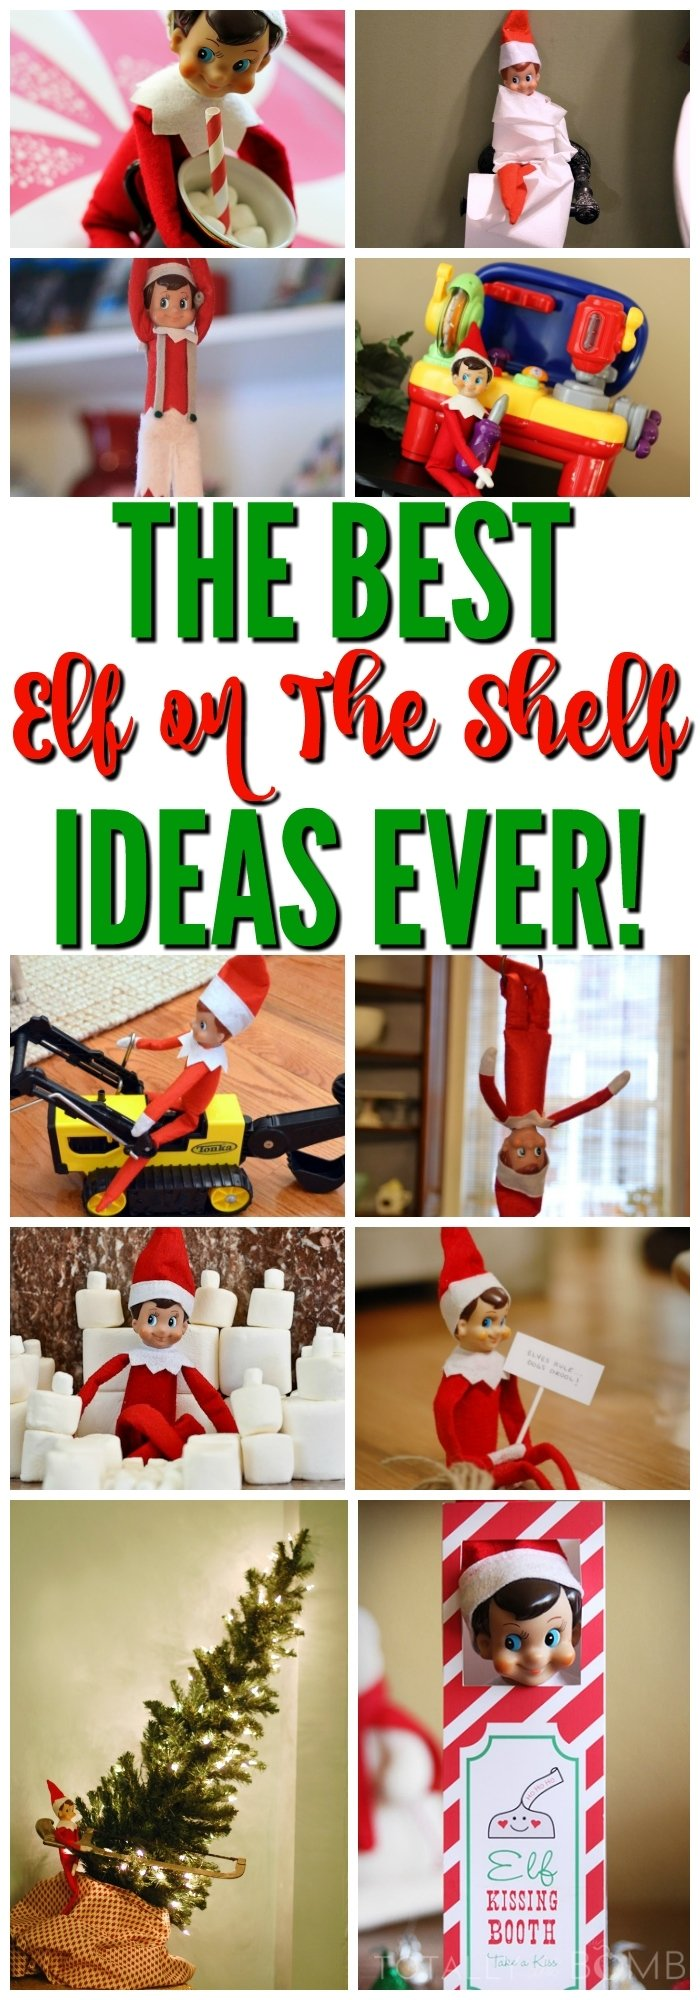 10 Unique Elf On The Self Ideas 30 totally genius and easy elf on the shelf ideas 2